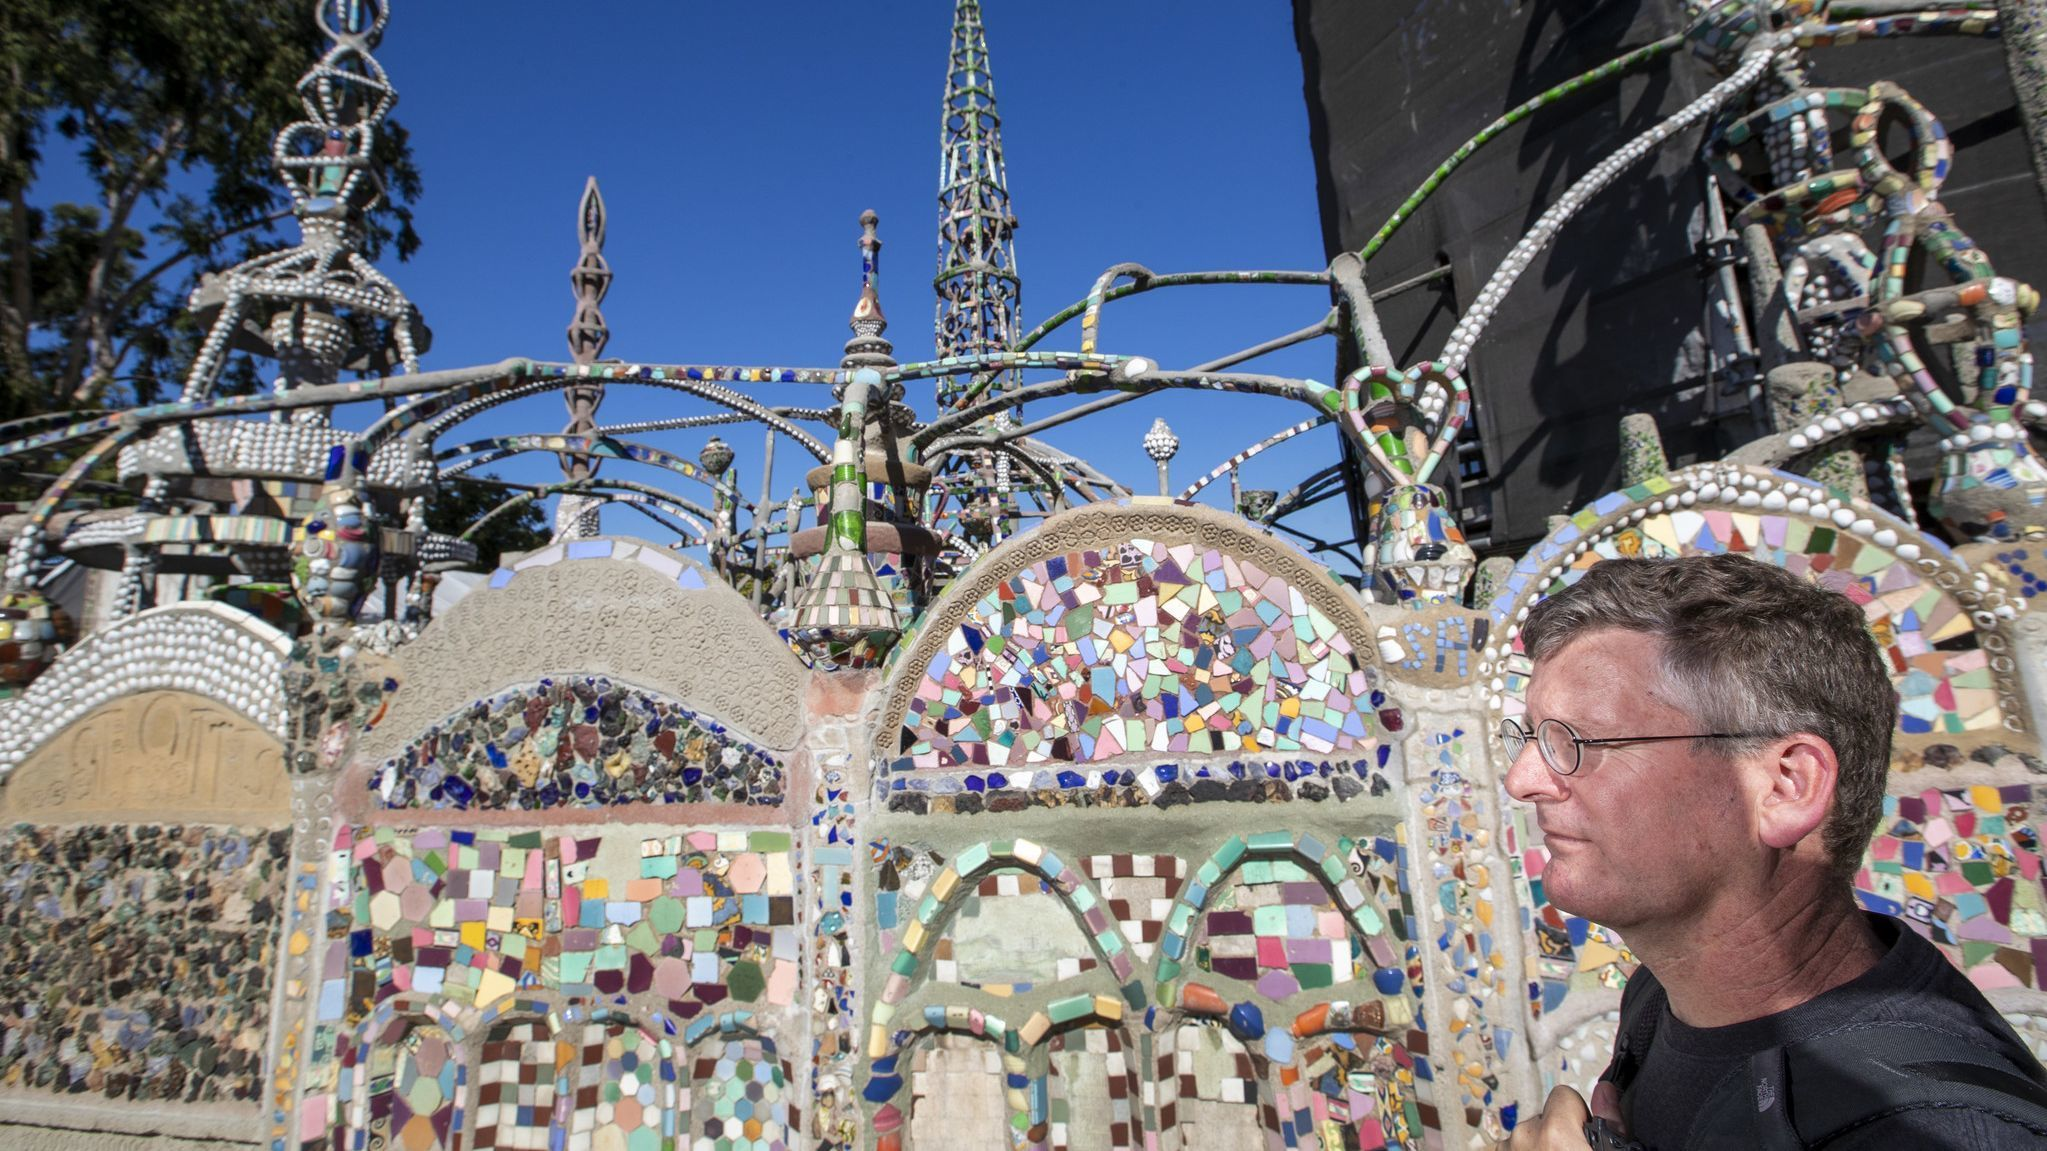 WATTS, CALIF. — WEDNESDAY, NOVEMBER 14, 2018: A view of shells imbedded in the Watts Towers by Saba